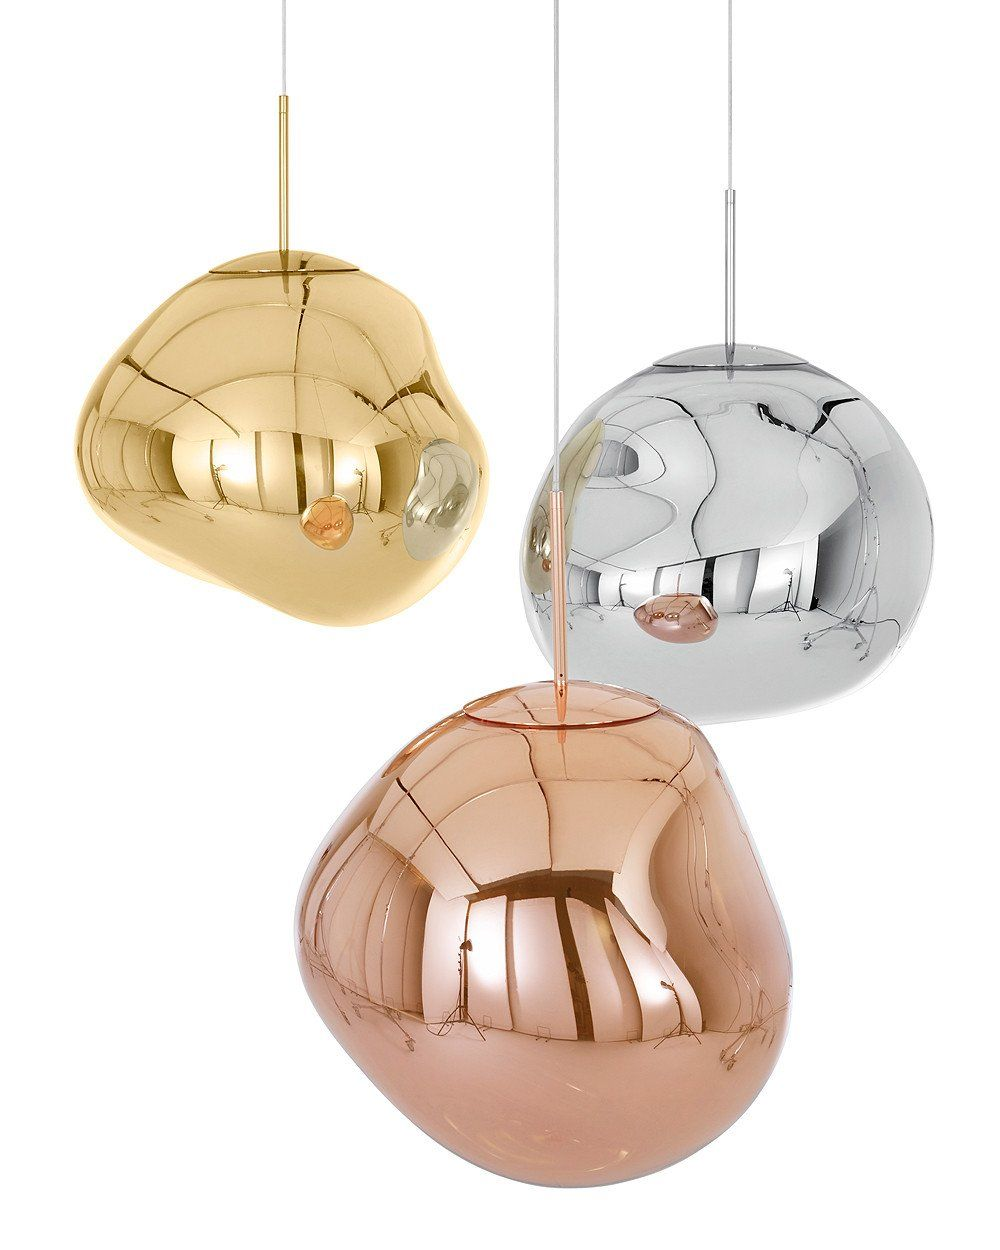 Tom Dixon Shares His Yesterday Today And Tomorrow Tom Dixon Lighting Tom Dixon Lamp Floor Lamp Design